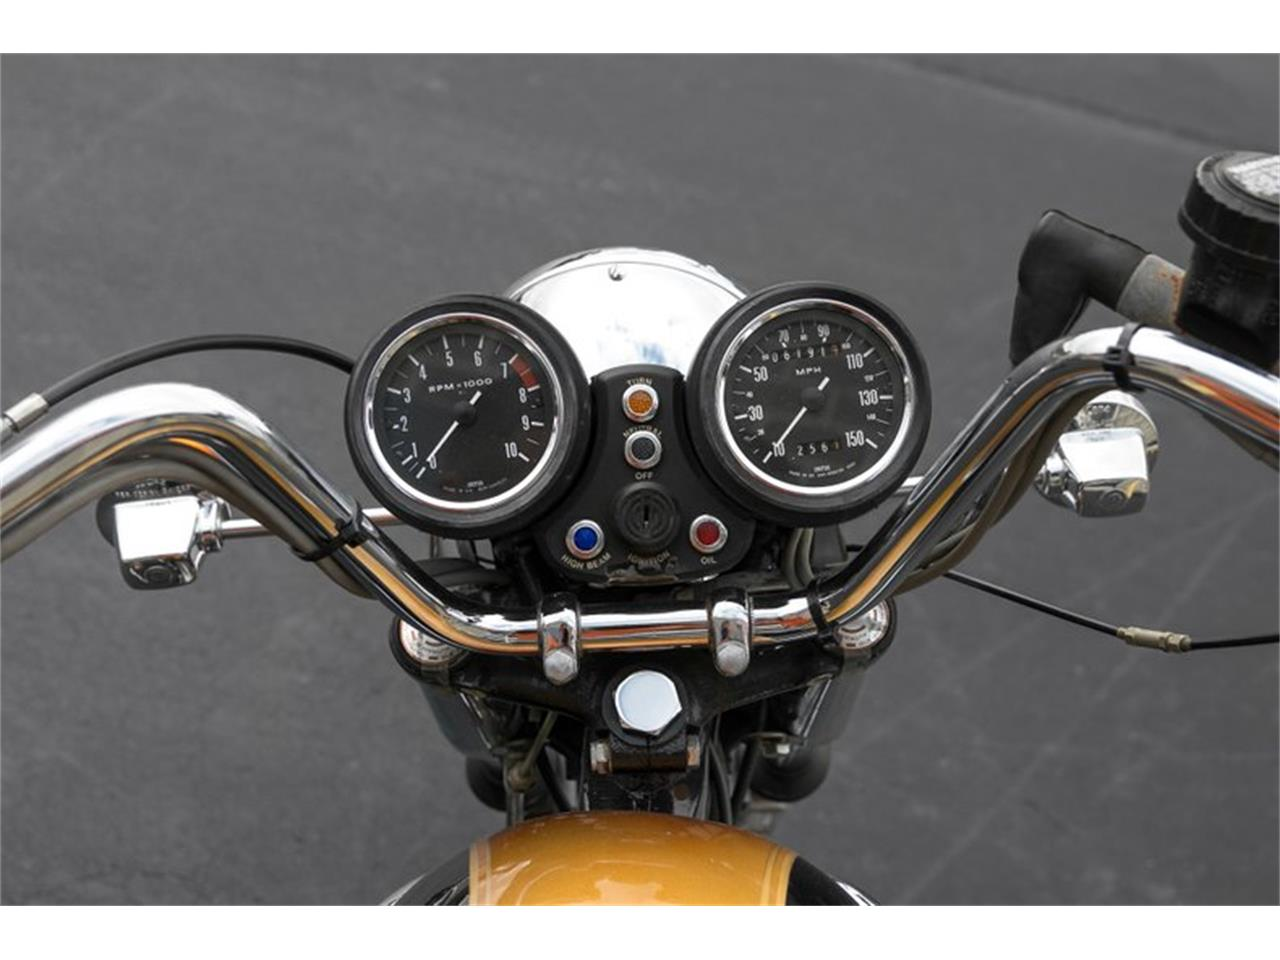 1979 Triumph Bonneville for sale in St. Charles, MO – photo 6